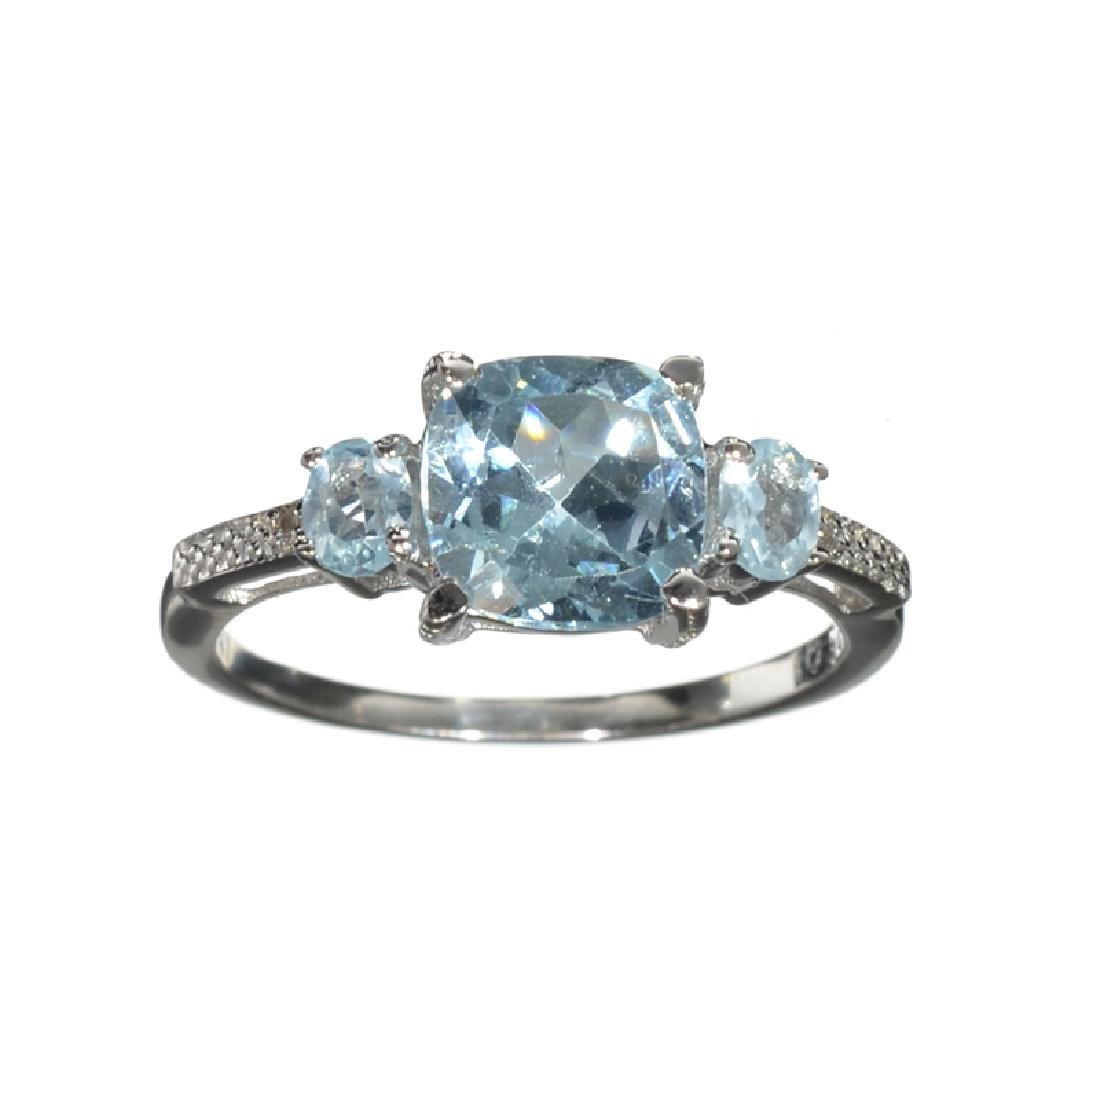 APP: 0.3k Fine Jewelry 2.91CT Blue Topaz And White